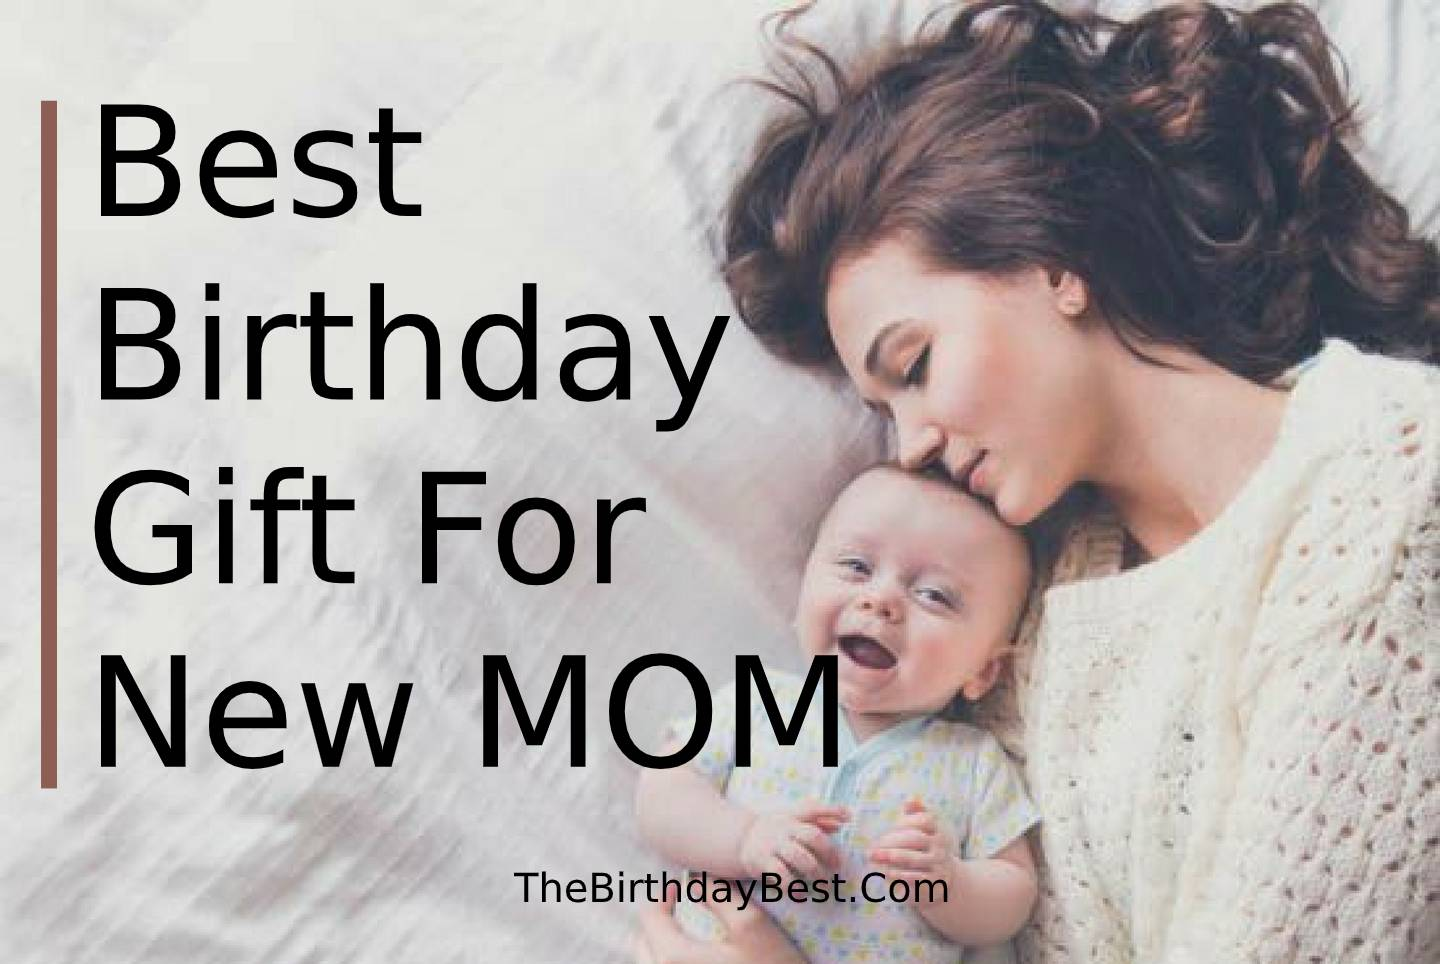 Best Birthday Gift For New Mom Of 2020 What To Give Her